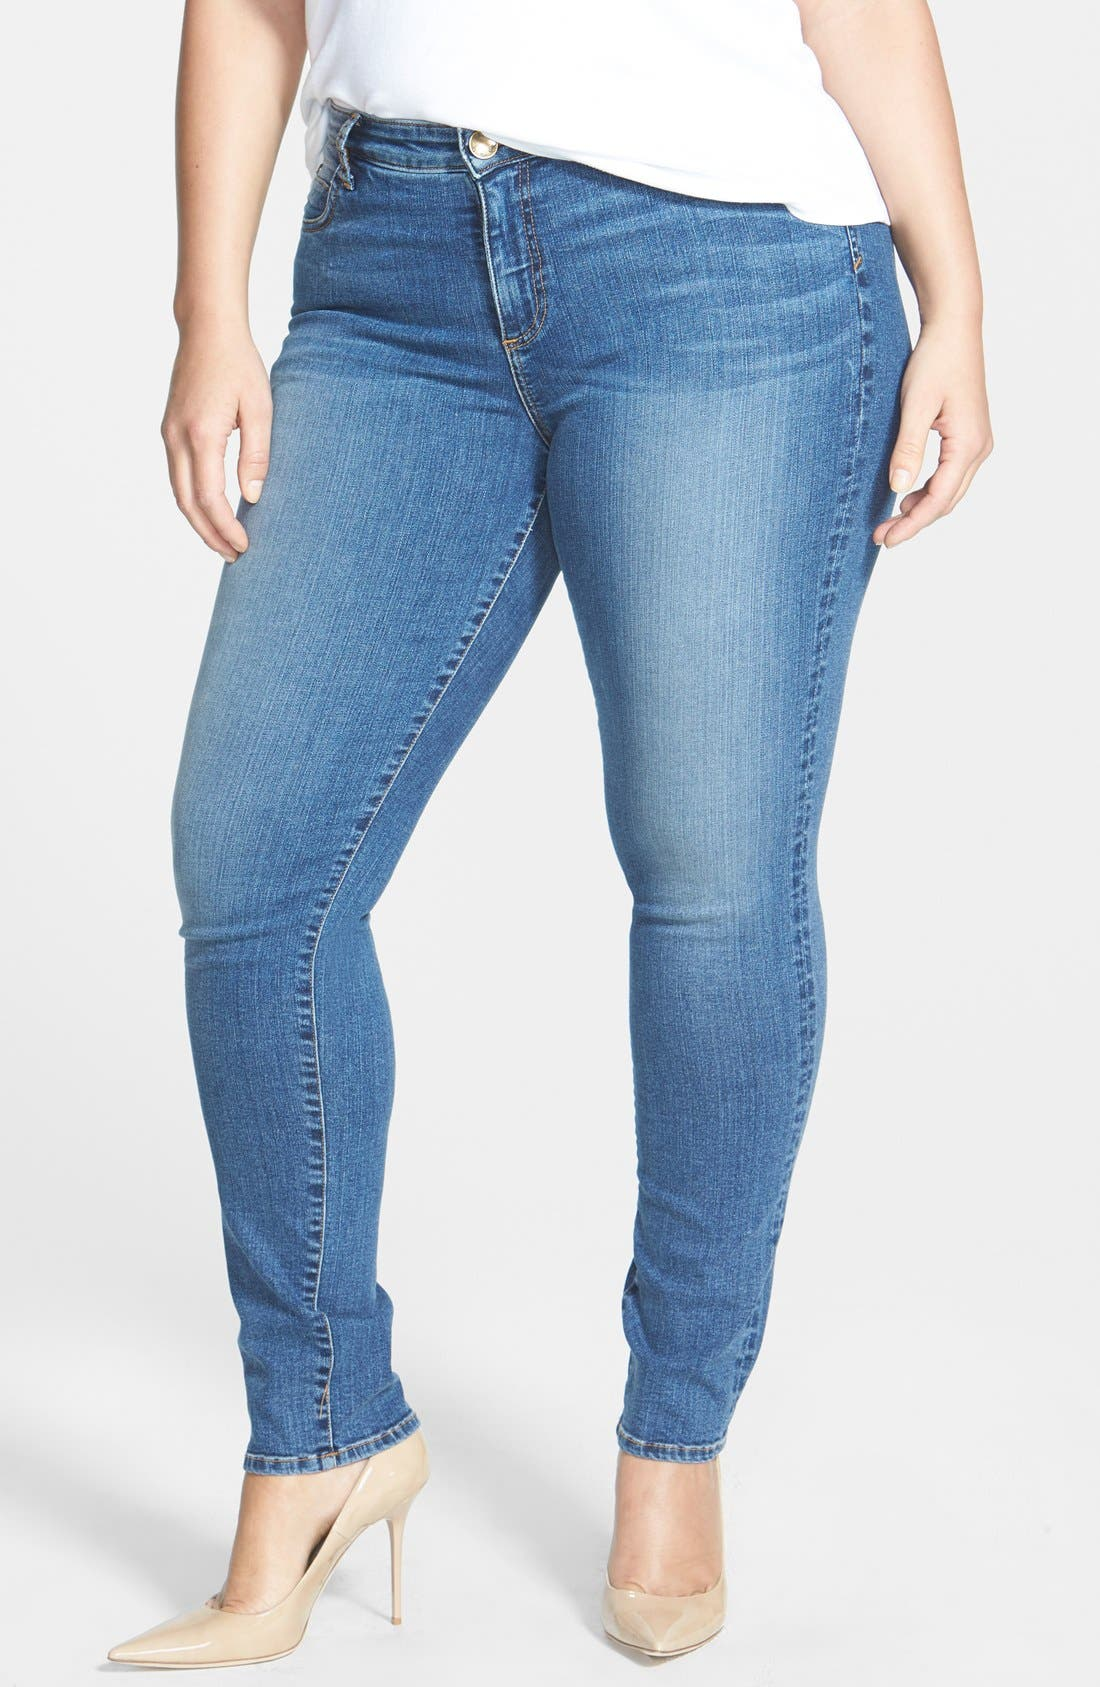 Alternate Image 1 Selected - KUT from the Kloth 'Diana' Stretch Skinny Jeans (Contingent) (Plus Size)